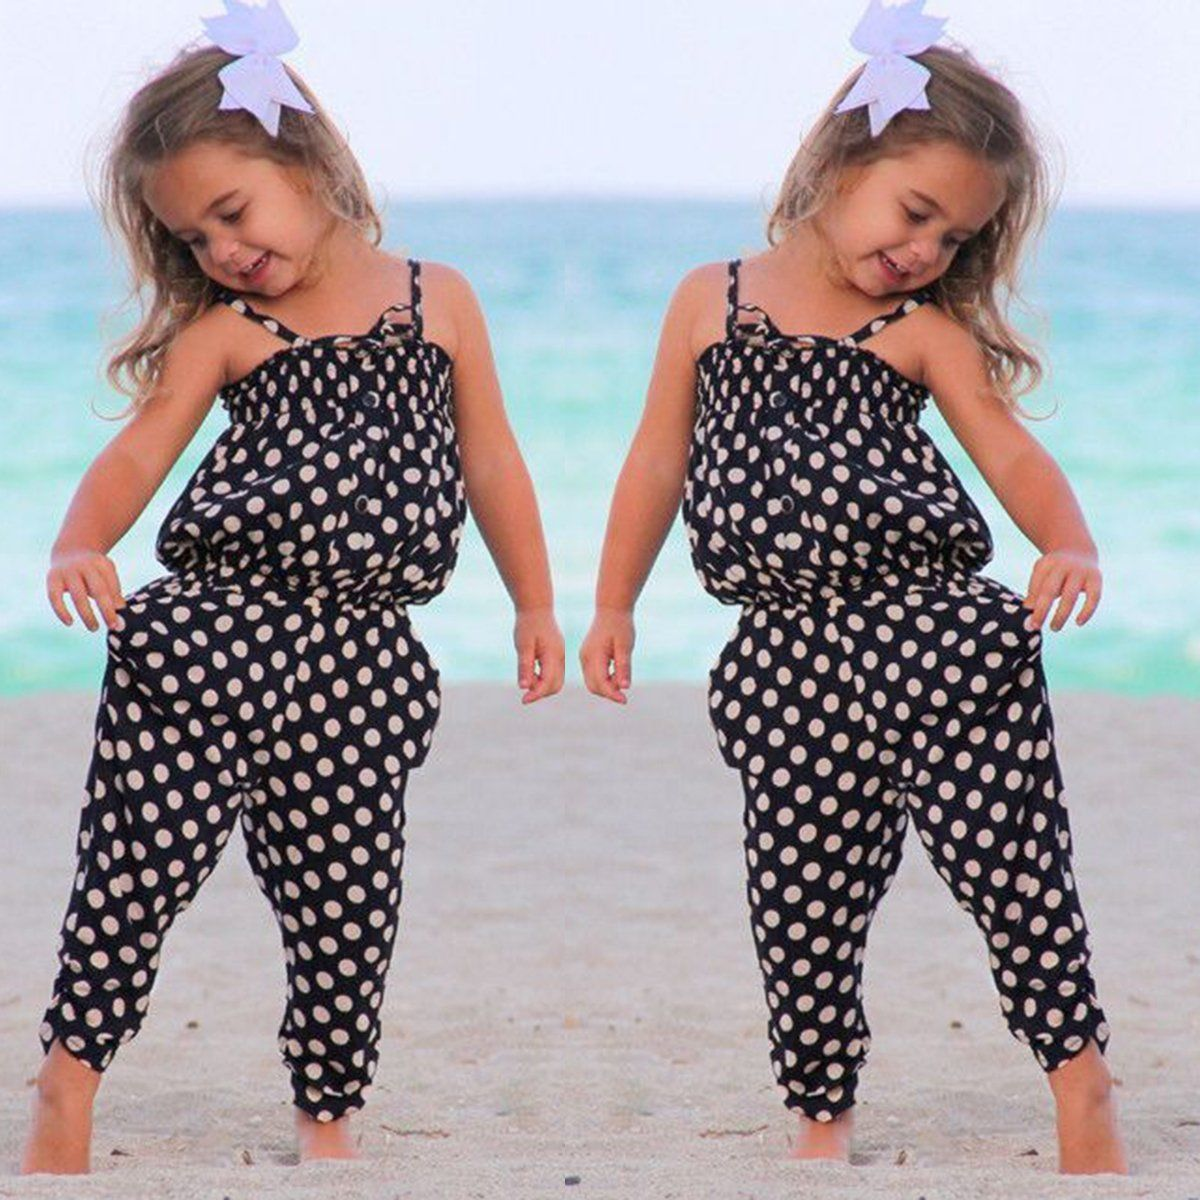 dc3c7e6d821d  4.59 - Kids Baby Girls Summer Strap Romper Jumpsuit Harem Pants ...